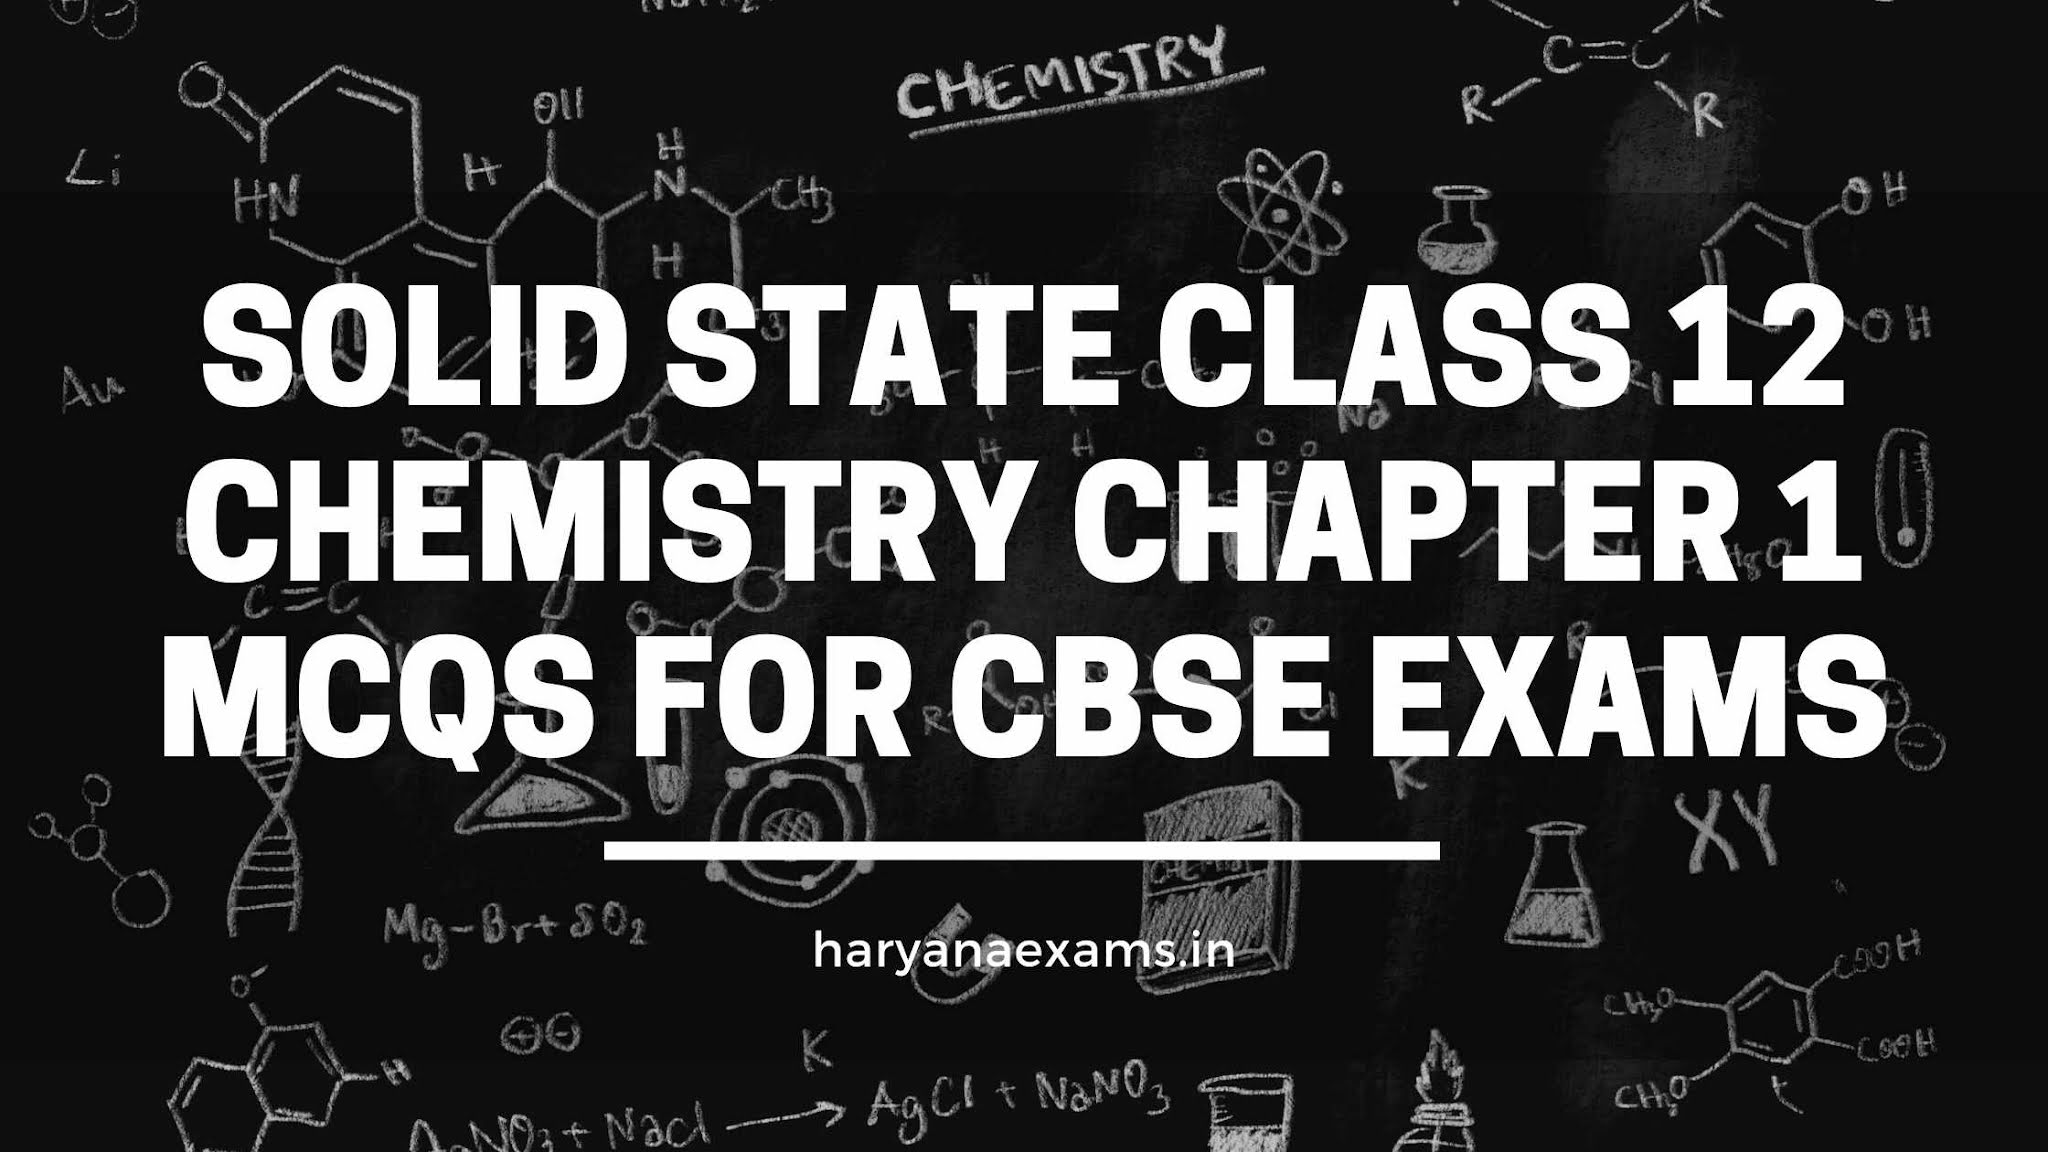 Solid State Class 12 Chemistry Chapter 1 MCQs For CBSE Exams